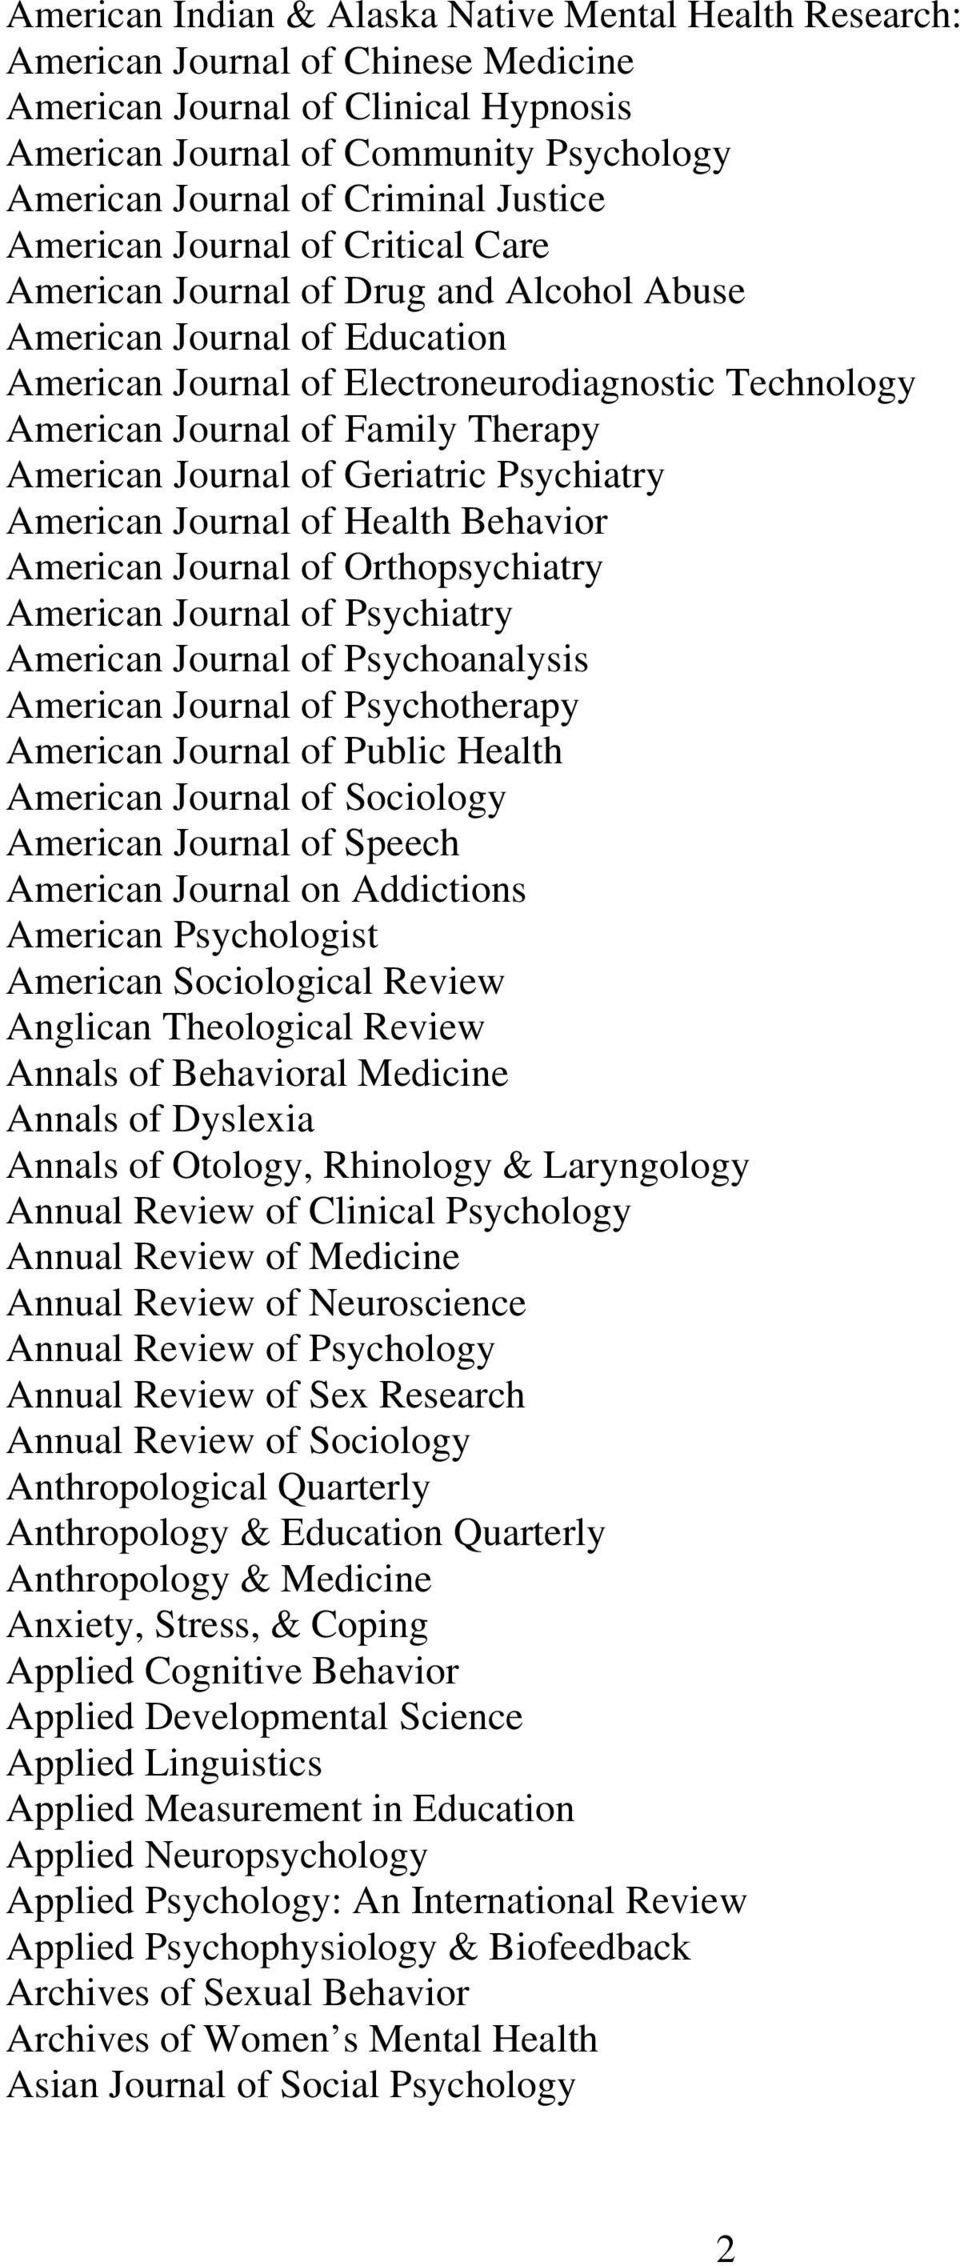 Family Therapy American Journal of Geriatric Psychiatry American Journal of Health Behavior American Journal of Orthopsychiatry American Journal of Psychiatry American Journal of Psychoanalysis